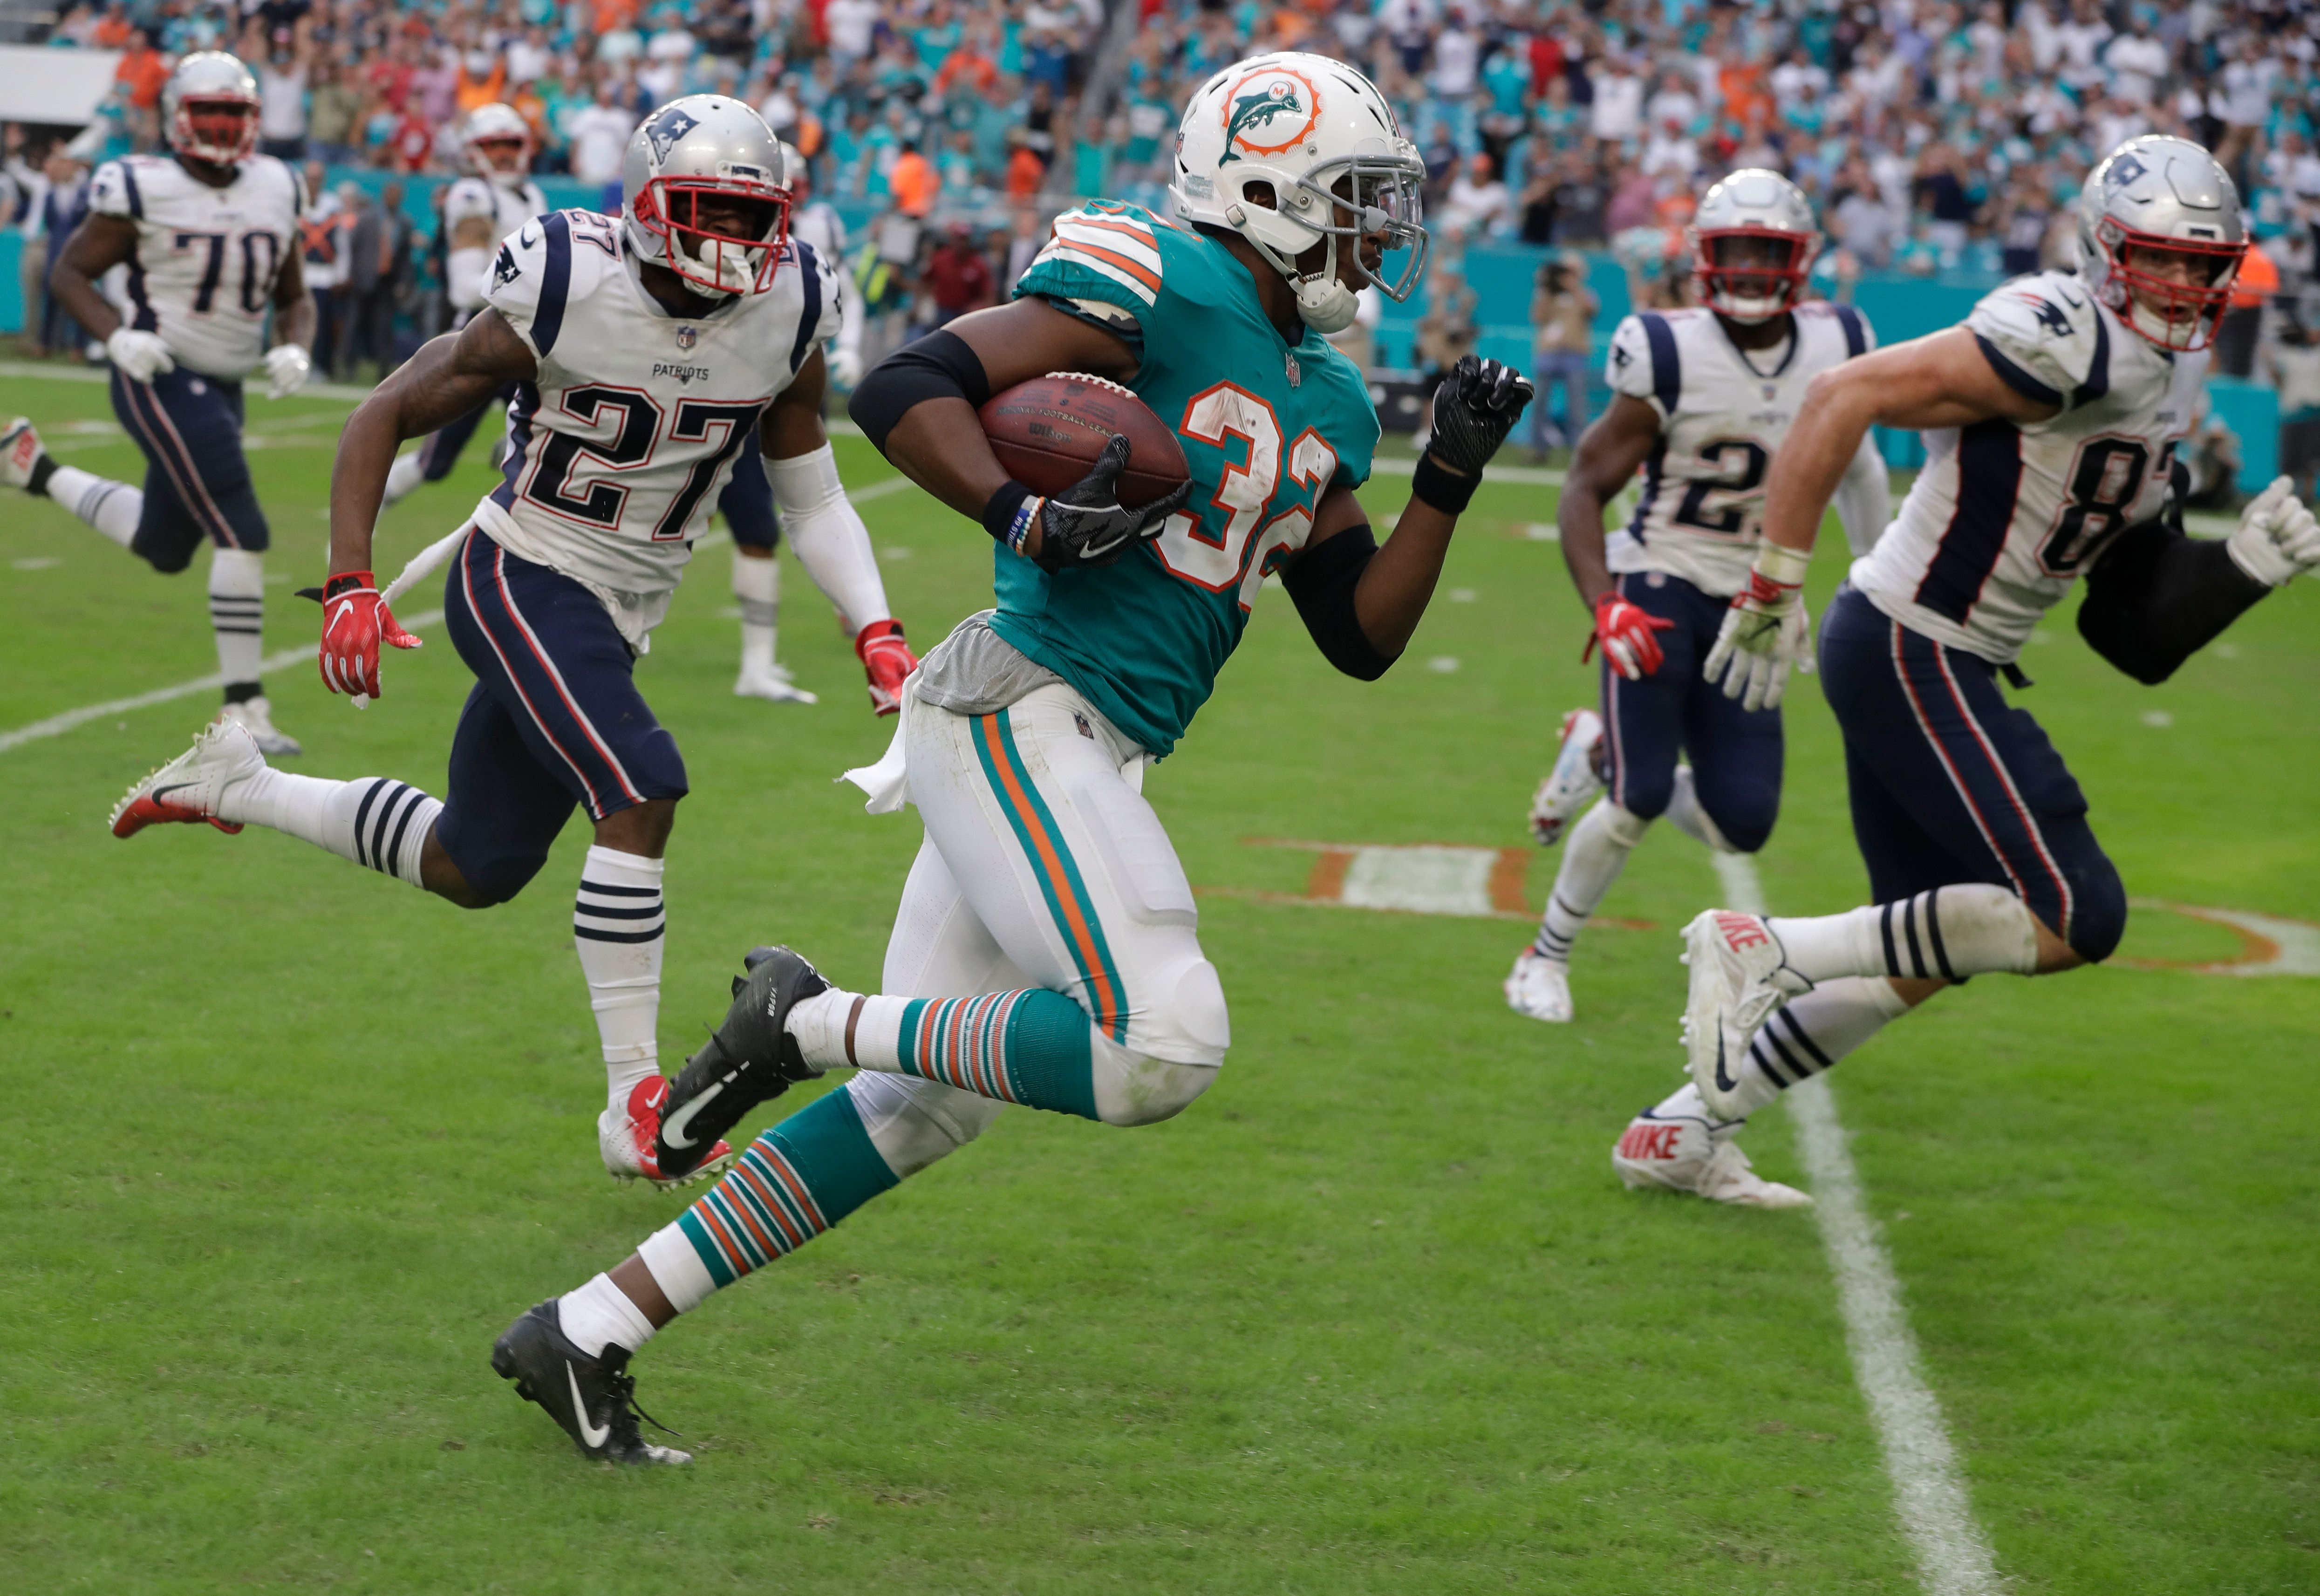 Miami Dolphins Needed A Miracle To Win. Watch What